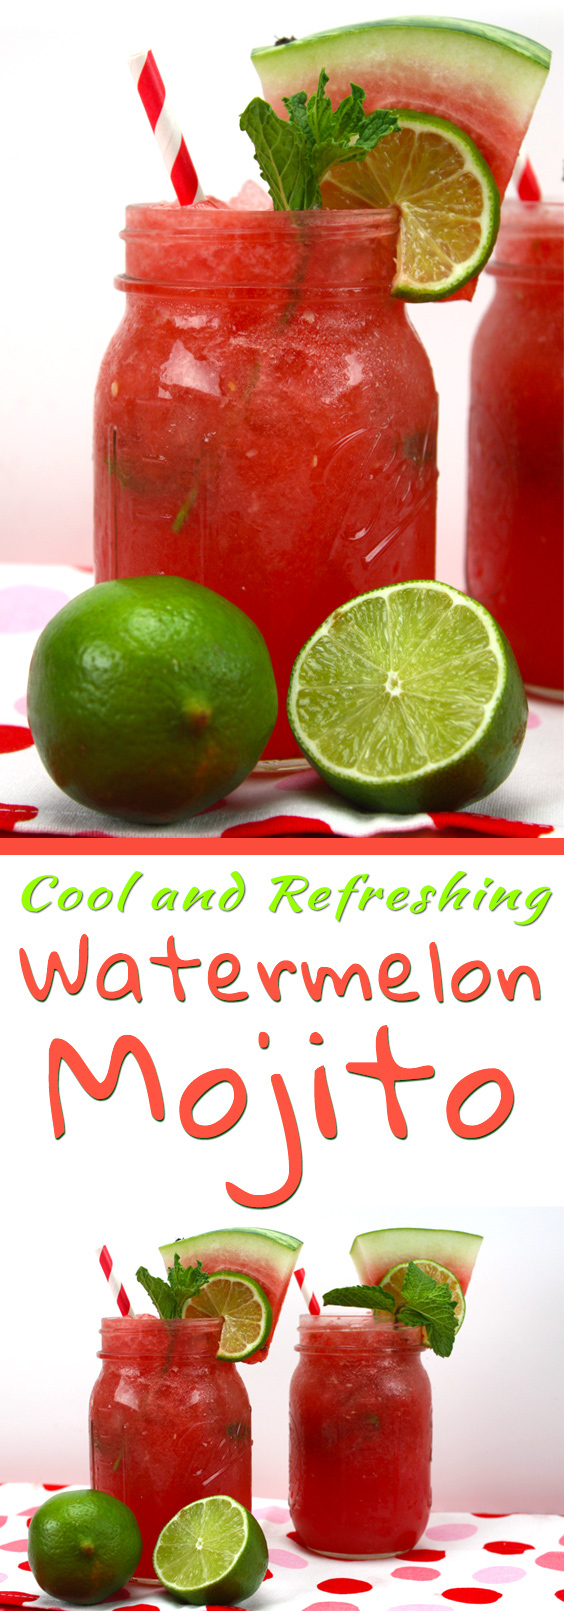 Watermelon Mojito - A light, refreshing cocktail to beat the summer heat!